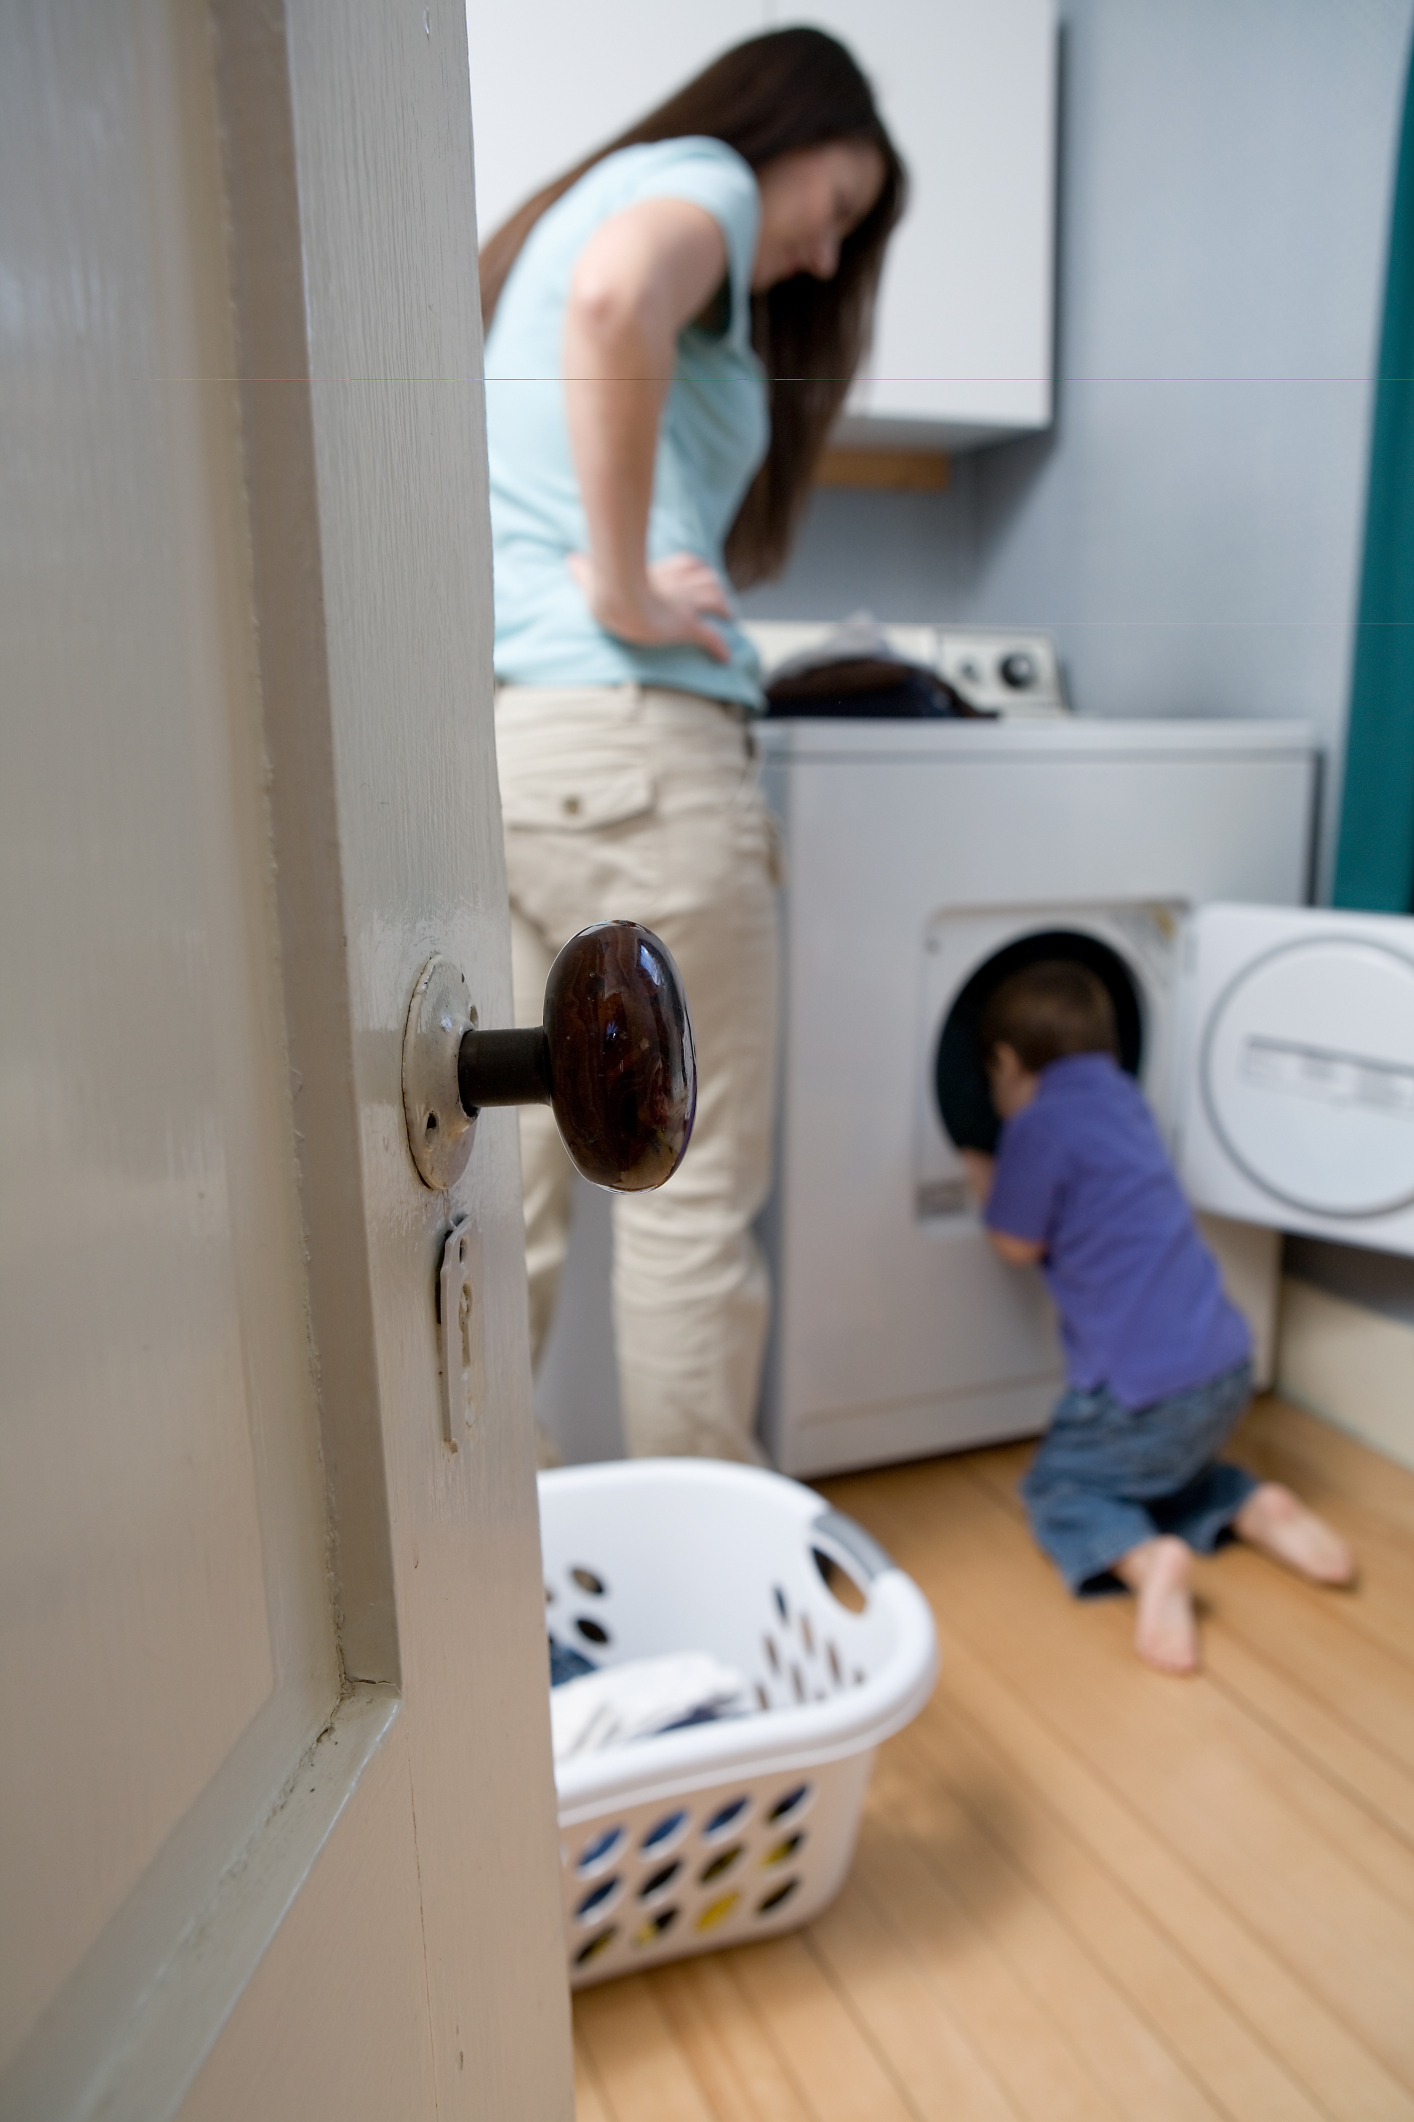 How To Get Mold Smell Out Of Clothes >> How to Get Moldy Smell Out of a Dryer | Home Guides | SF Gate